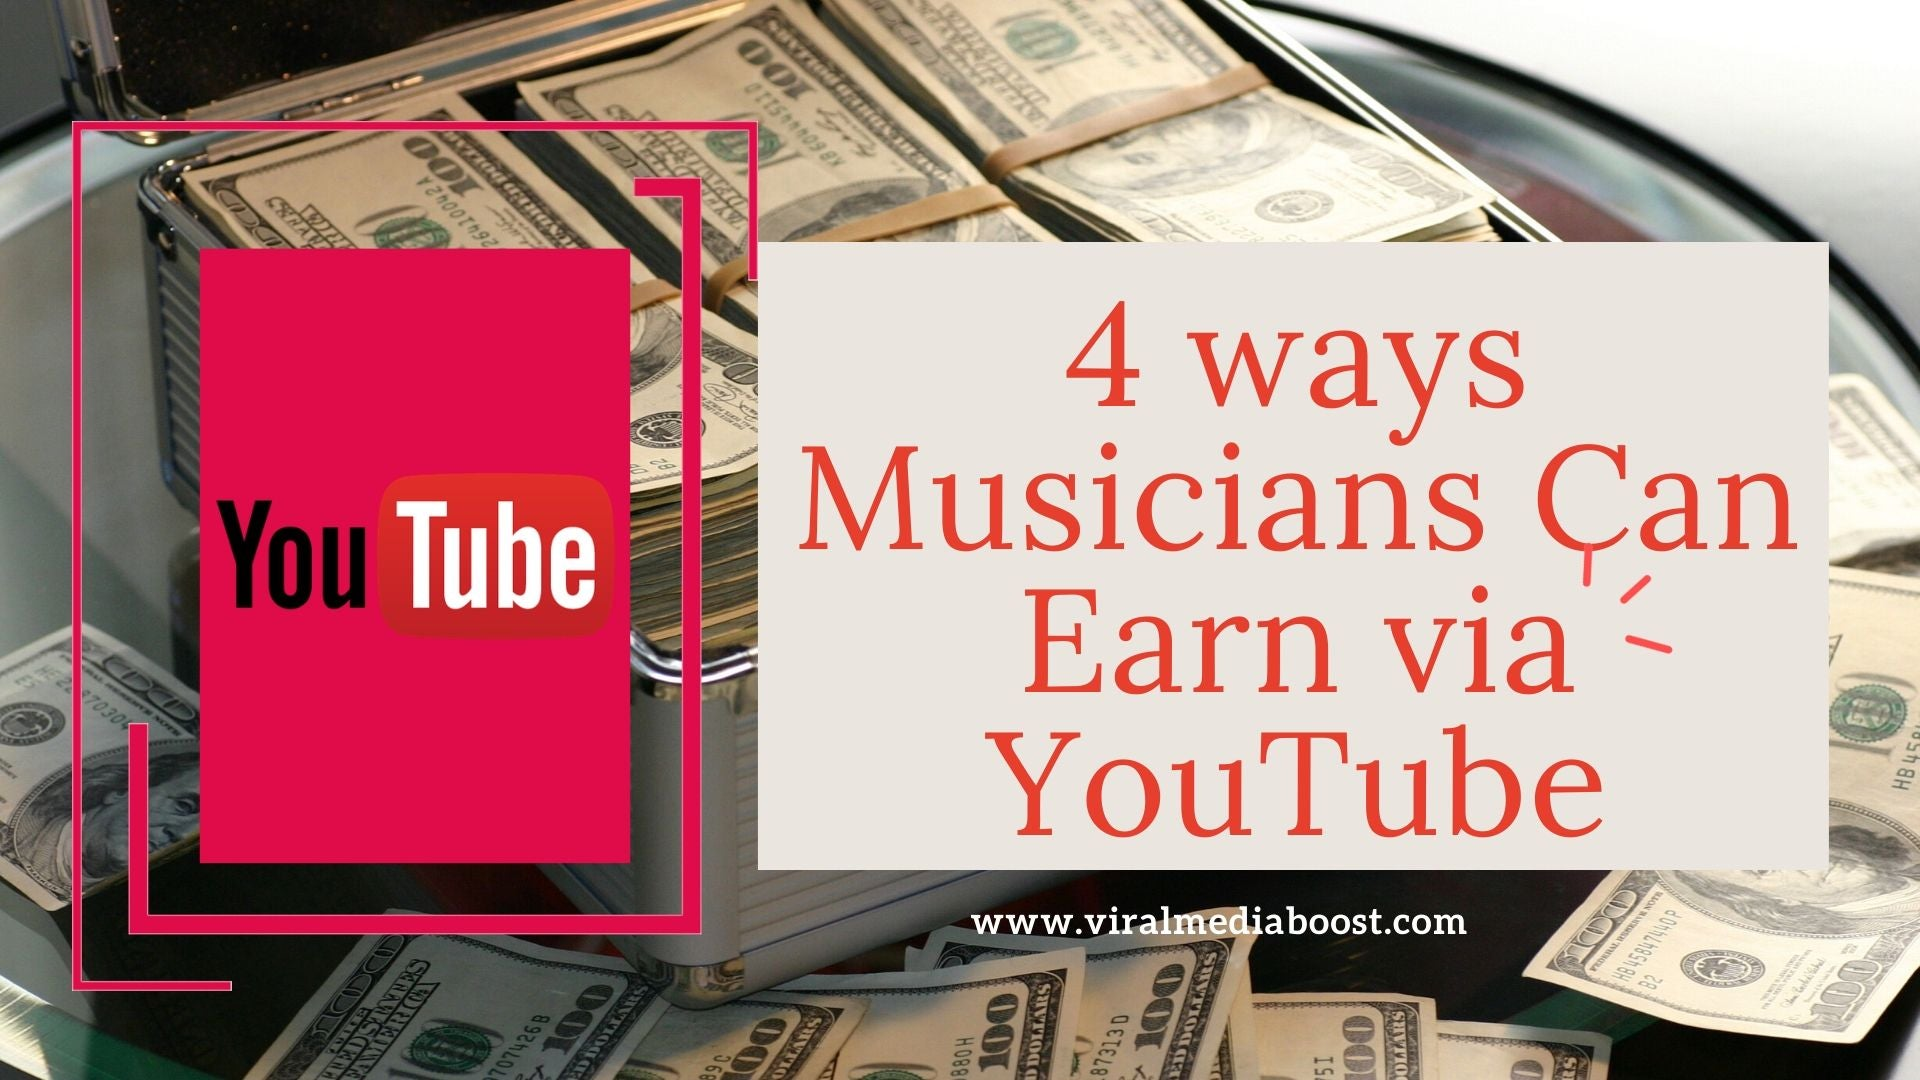 4 Ways Musicians can Earn via YouTube